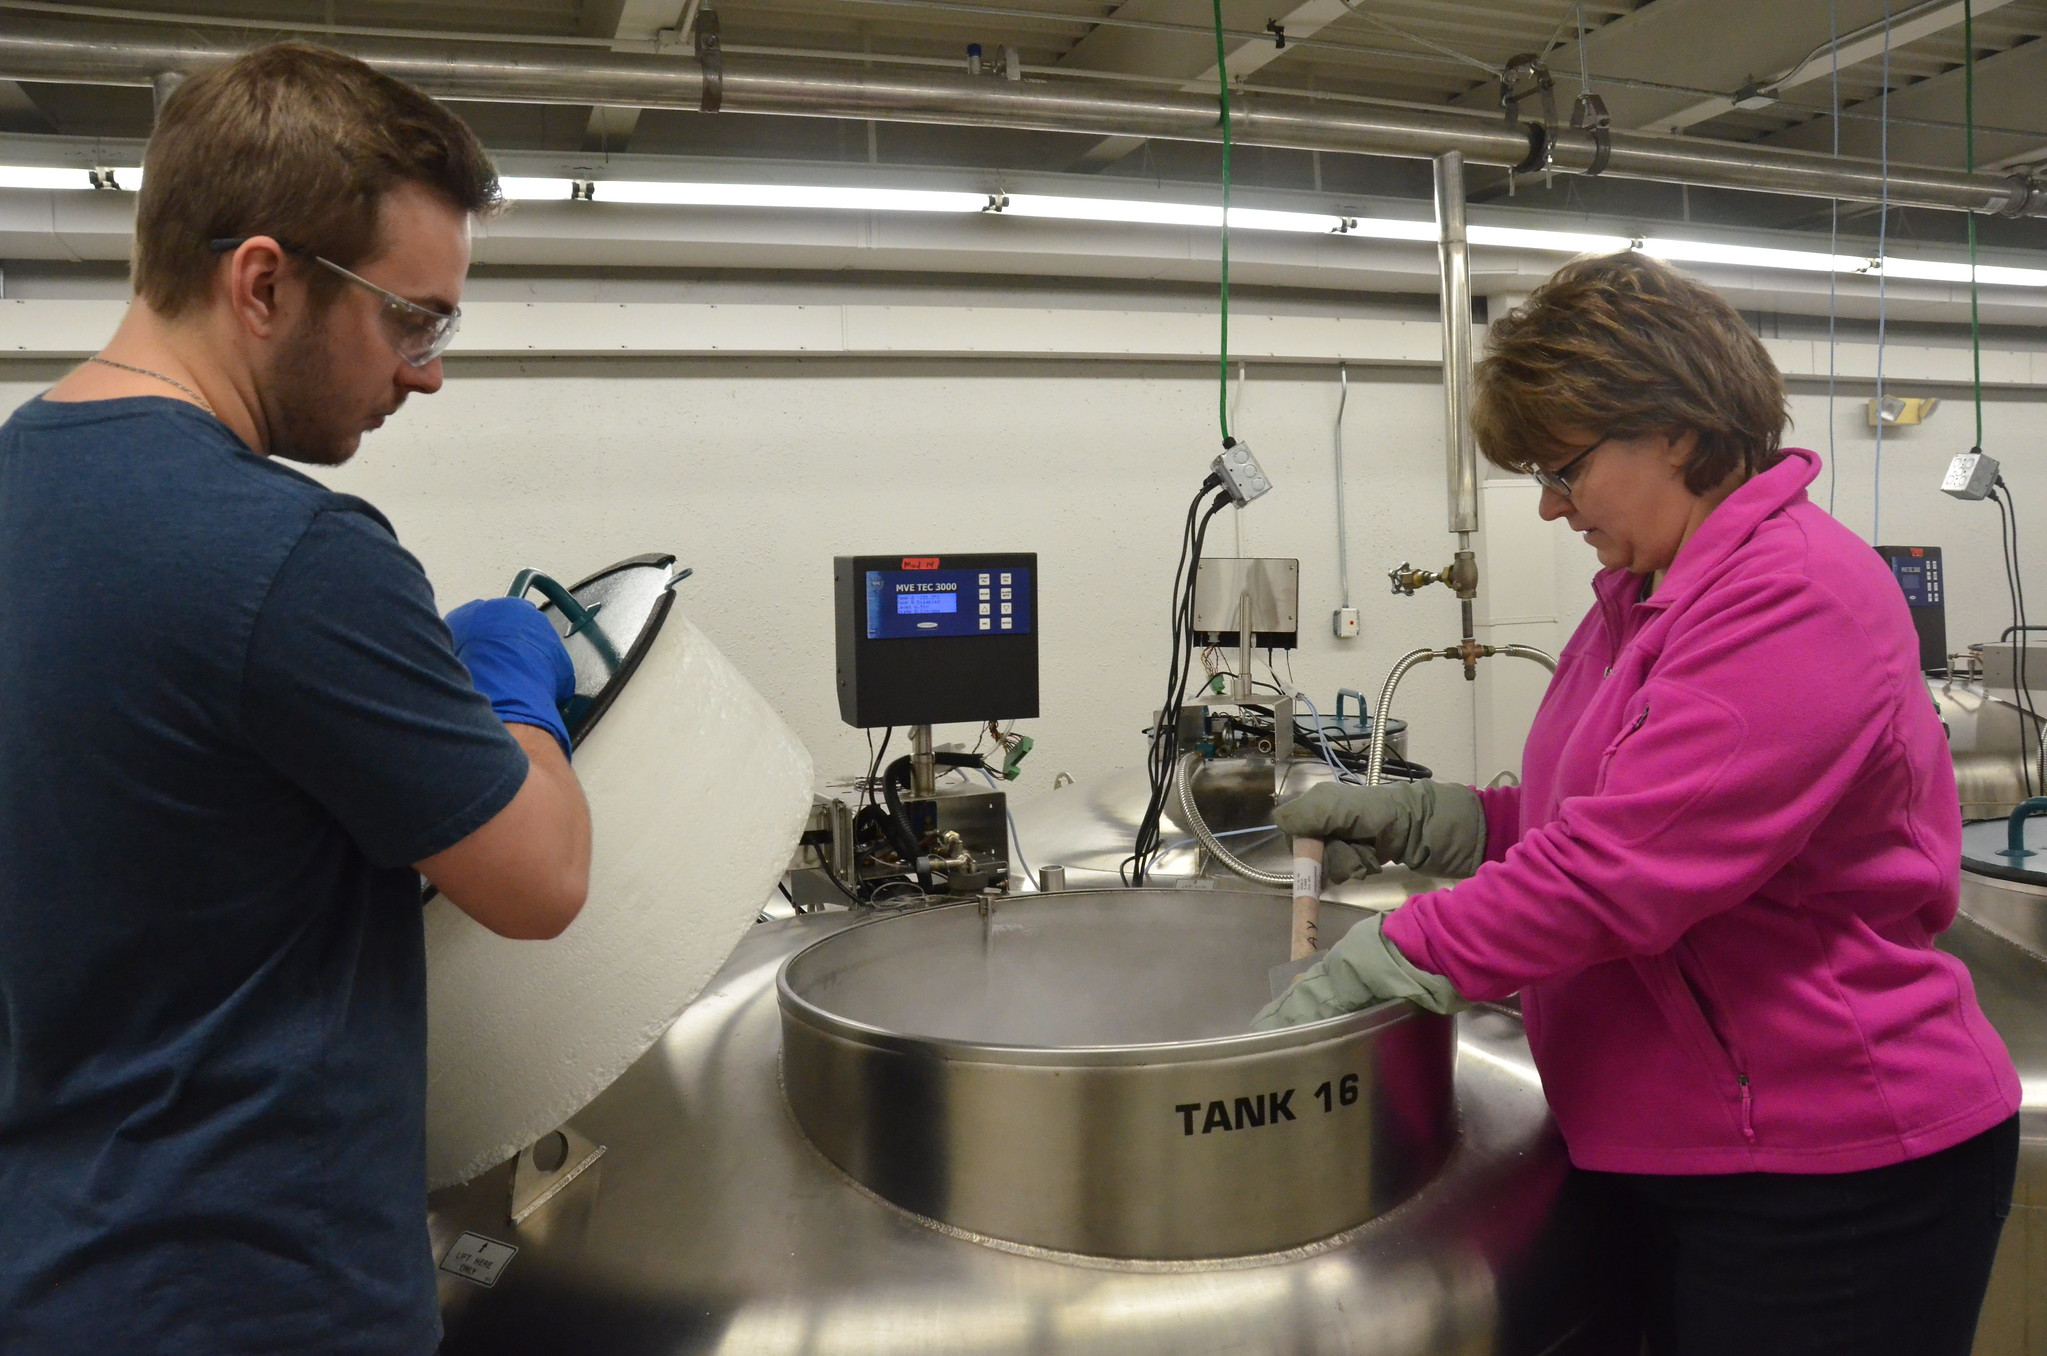 Image of Lisa Hill and Ryan Lynch checking samples at -176 in LN2 tank at NLGRP.